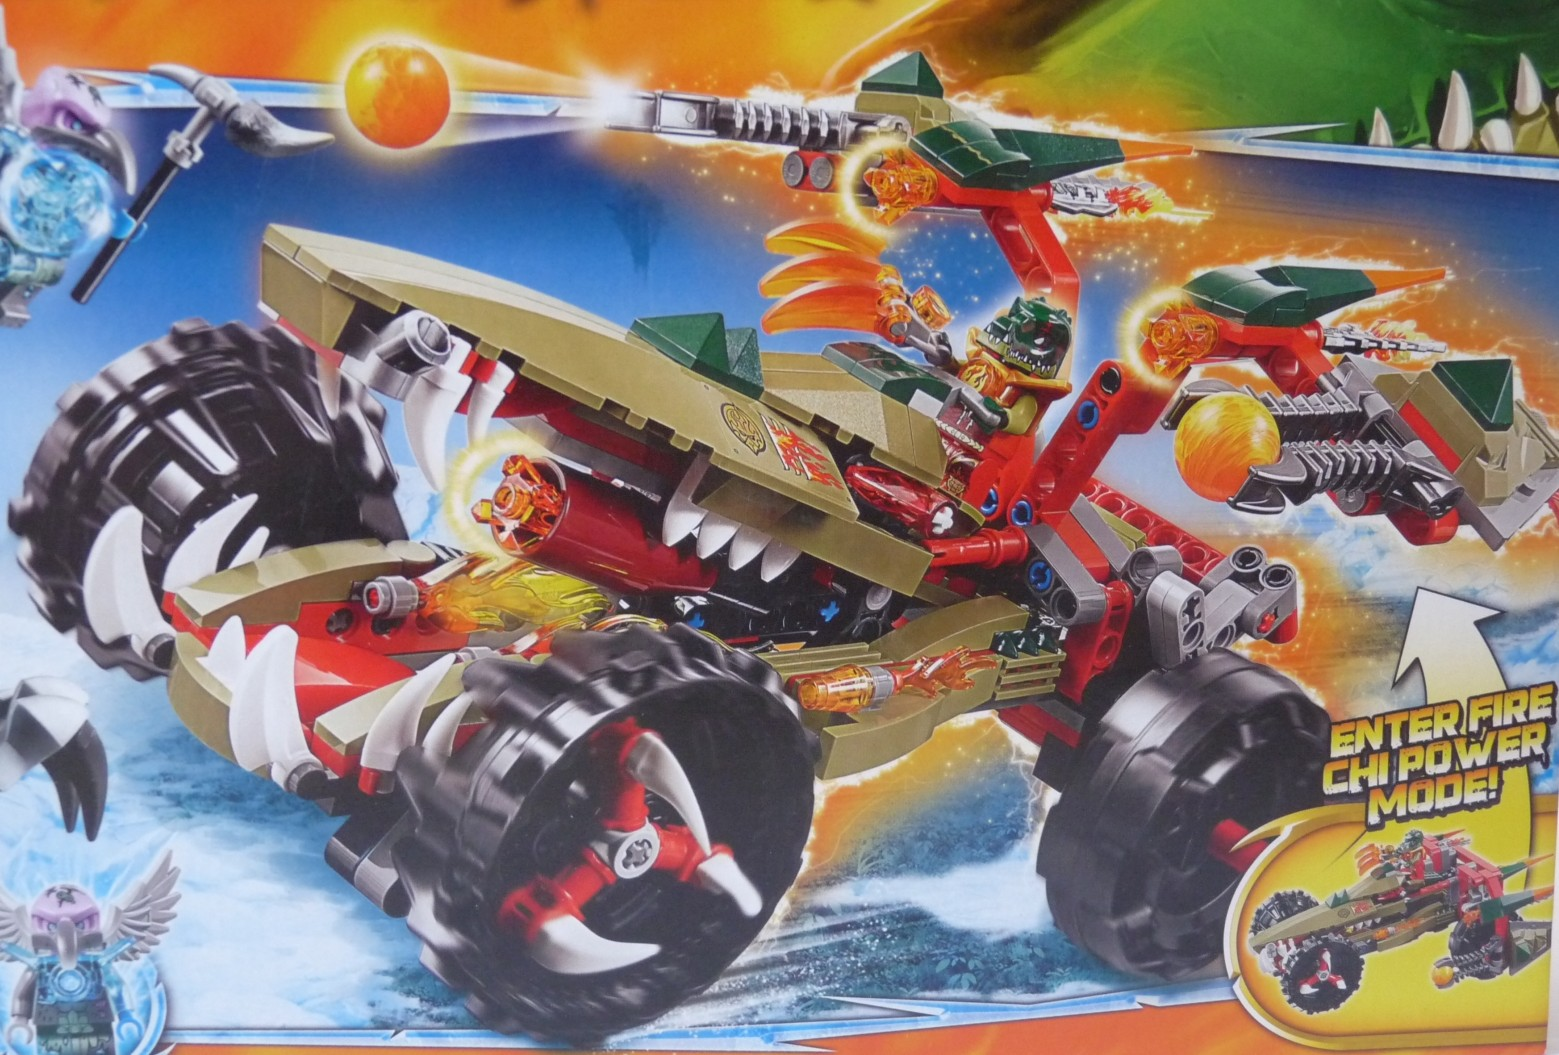 What do you think of this LEGO 2014 summer exclusive Chima set, LEGO